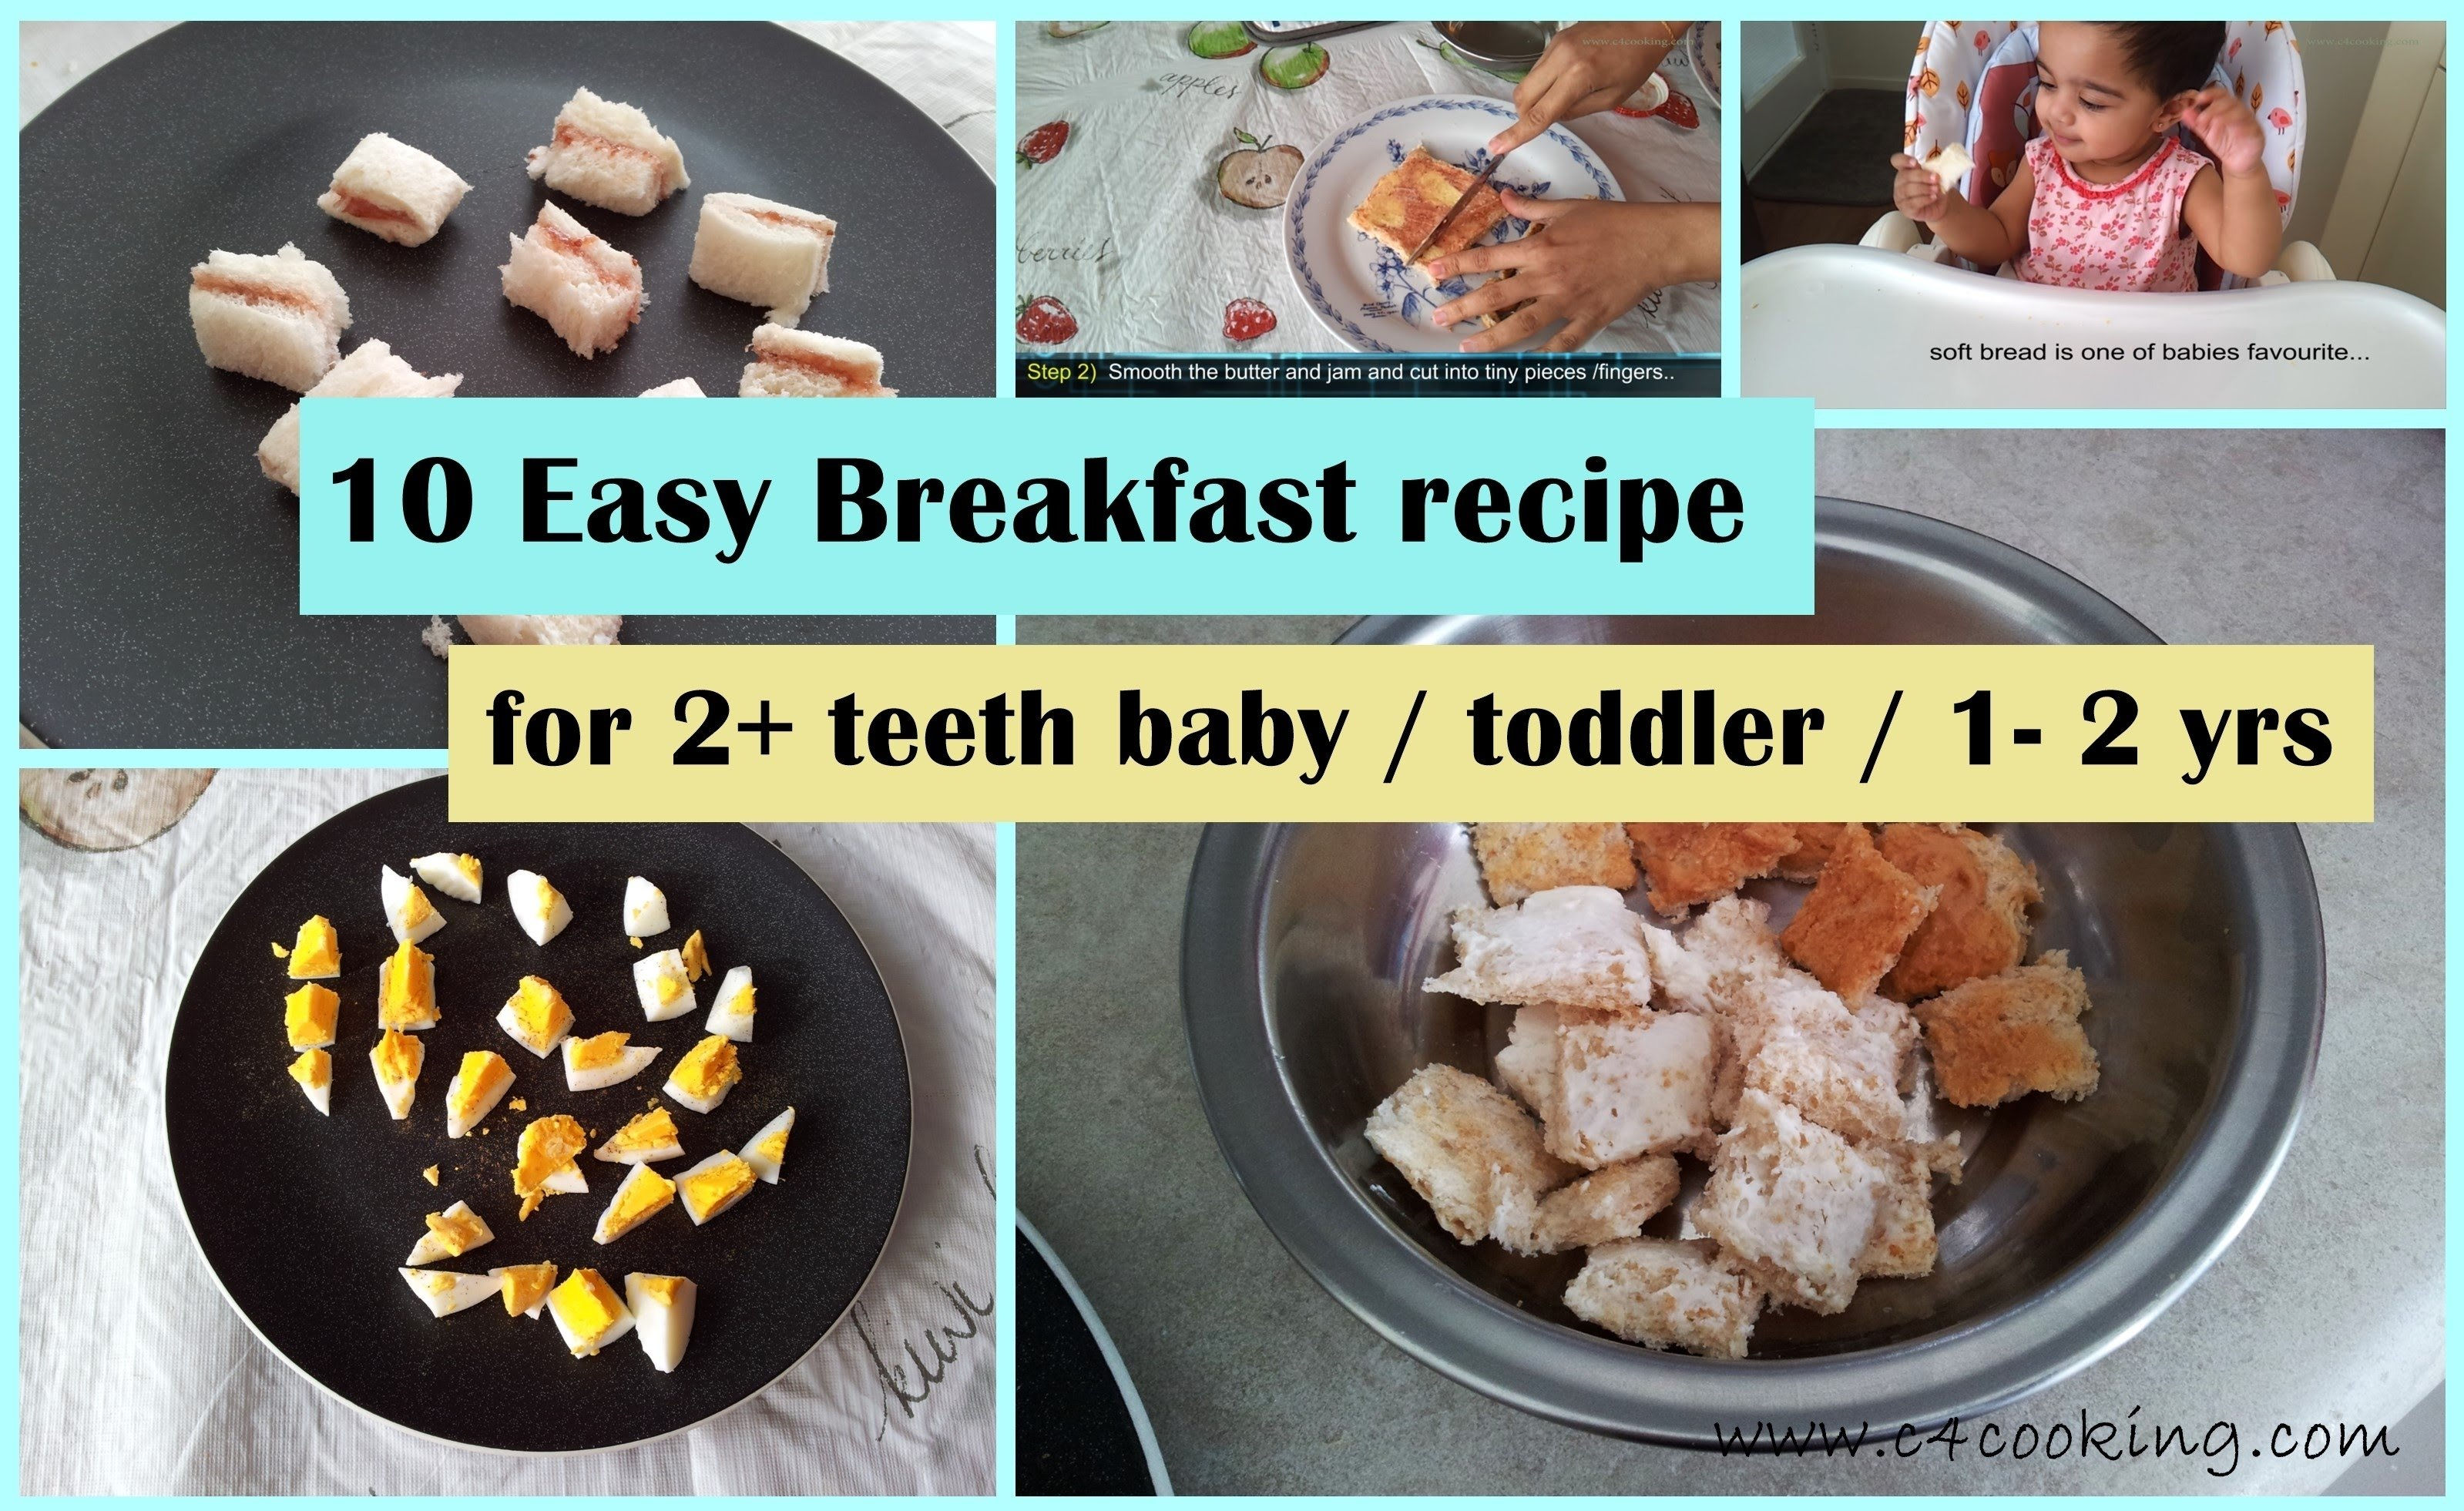 10 Elegant Meal Ideas For 10 Month Old 10 easy breakfast ideas for 2 teeth baby toddler 1 2 yrs